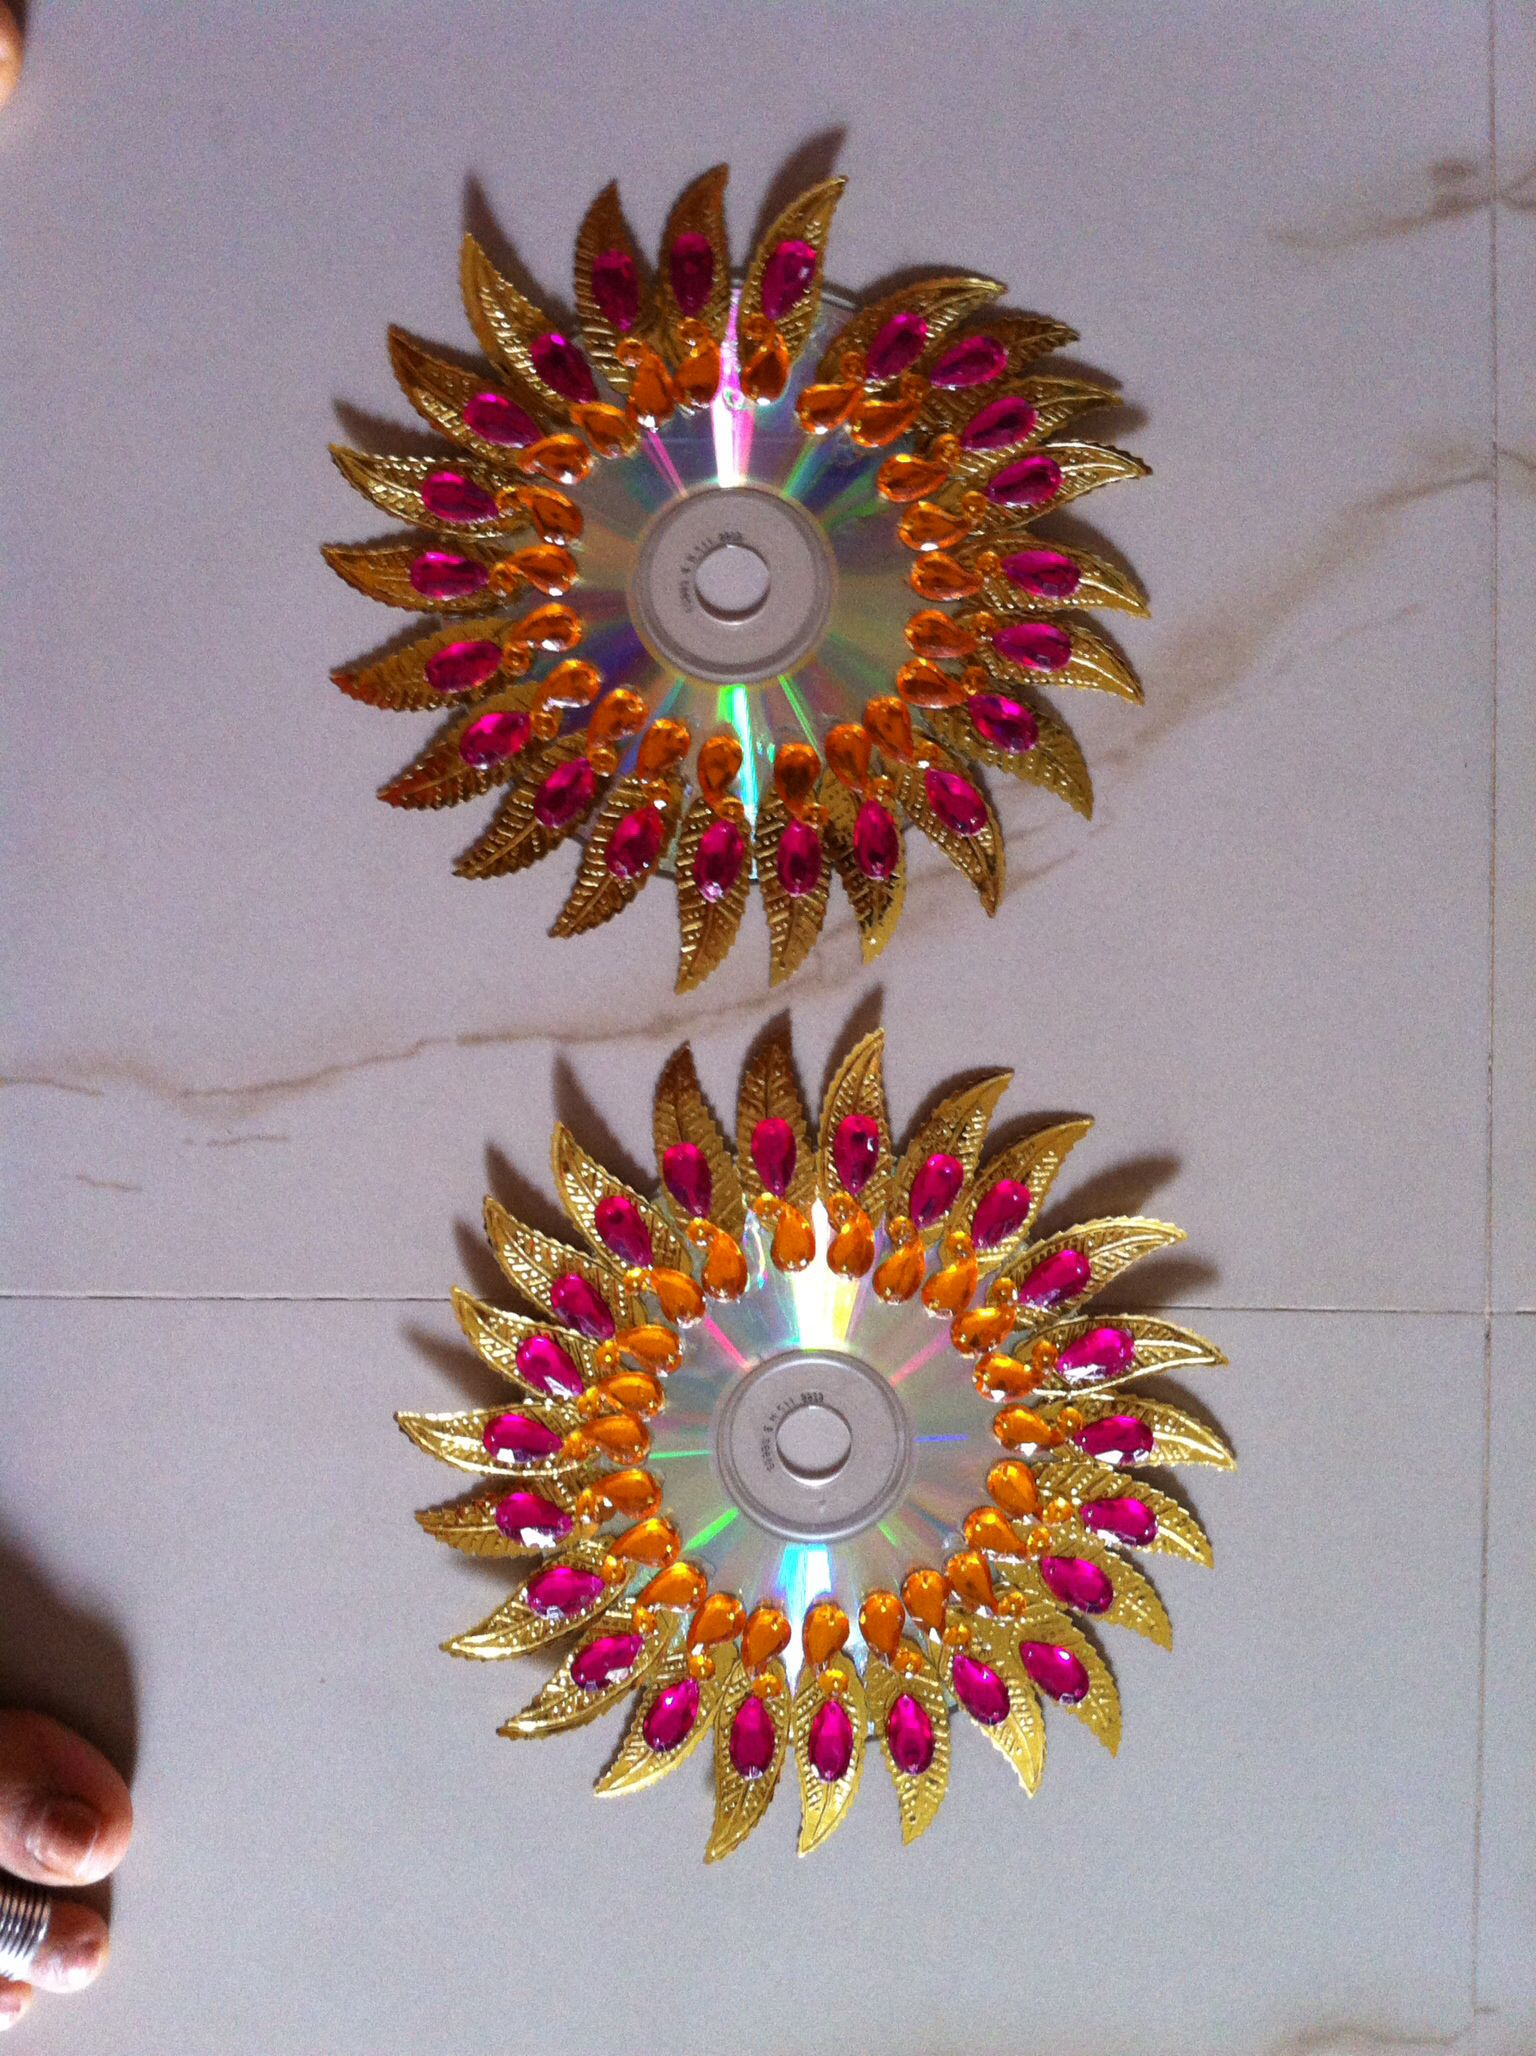 Diwali Decoration Ideas And Crafts Kundan Rangolies On Cd Decor Cd Crafts Diwali Diy